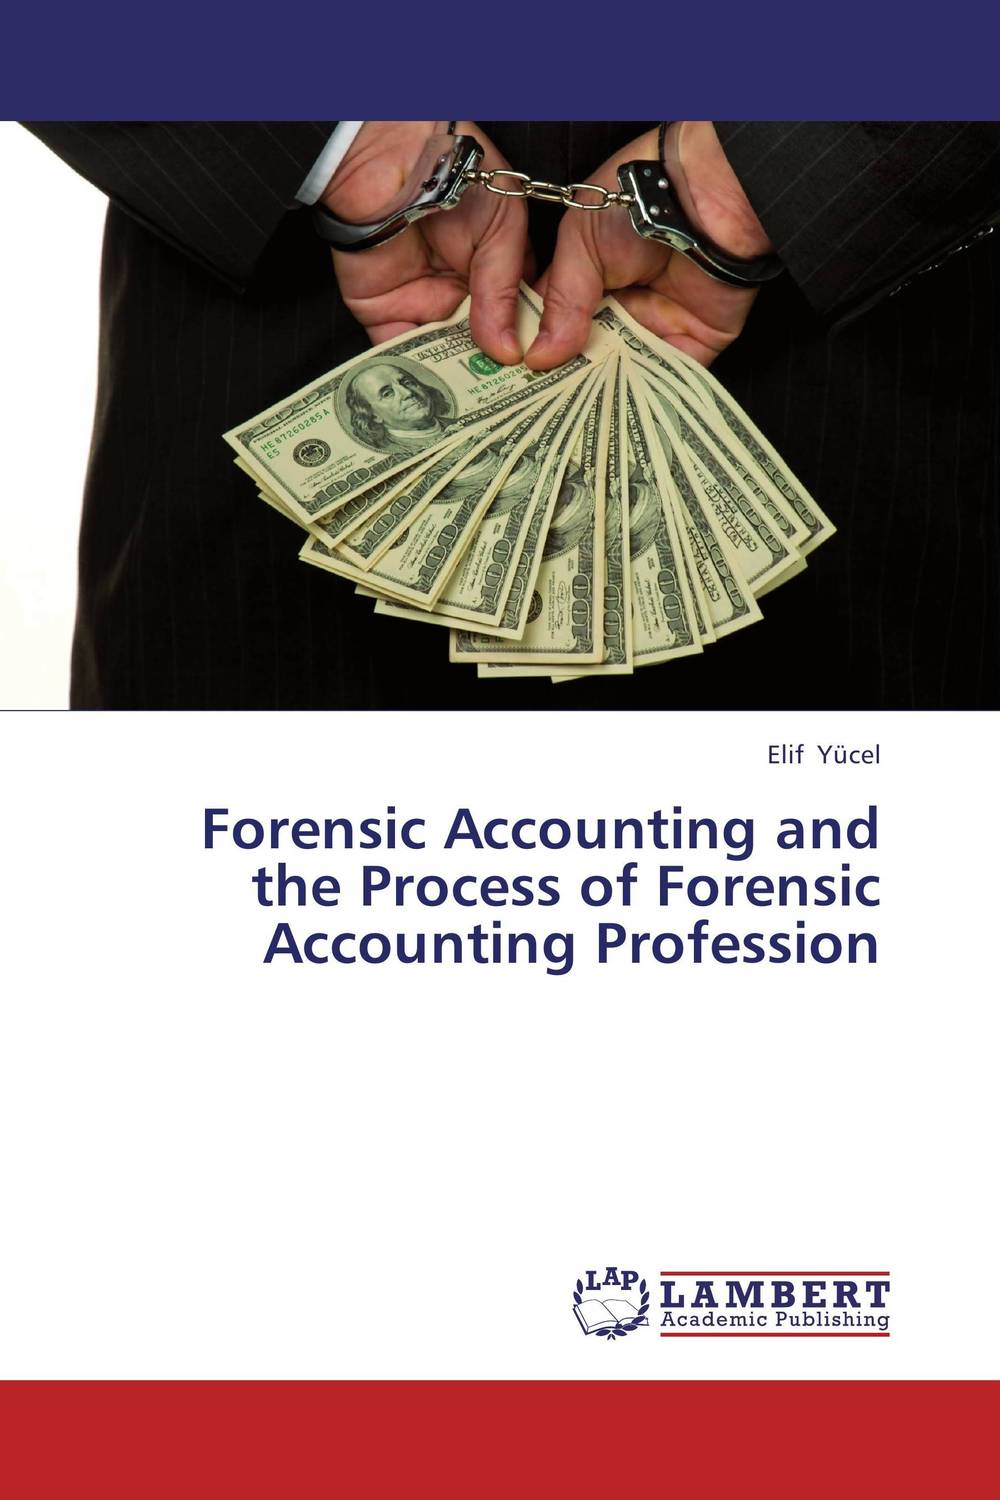 Forensic Accounting and the Process of Forensic Accounting Profession karanprakash singh ramanpreet kaur bhullar and sumit kochhar forensic dentistry teeth and their secrets